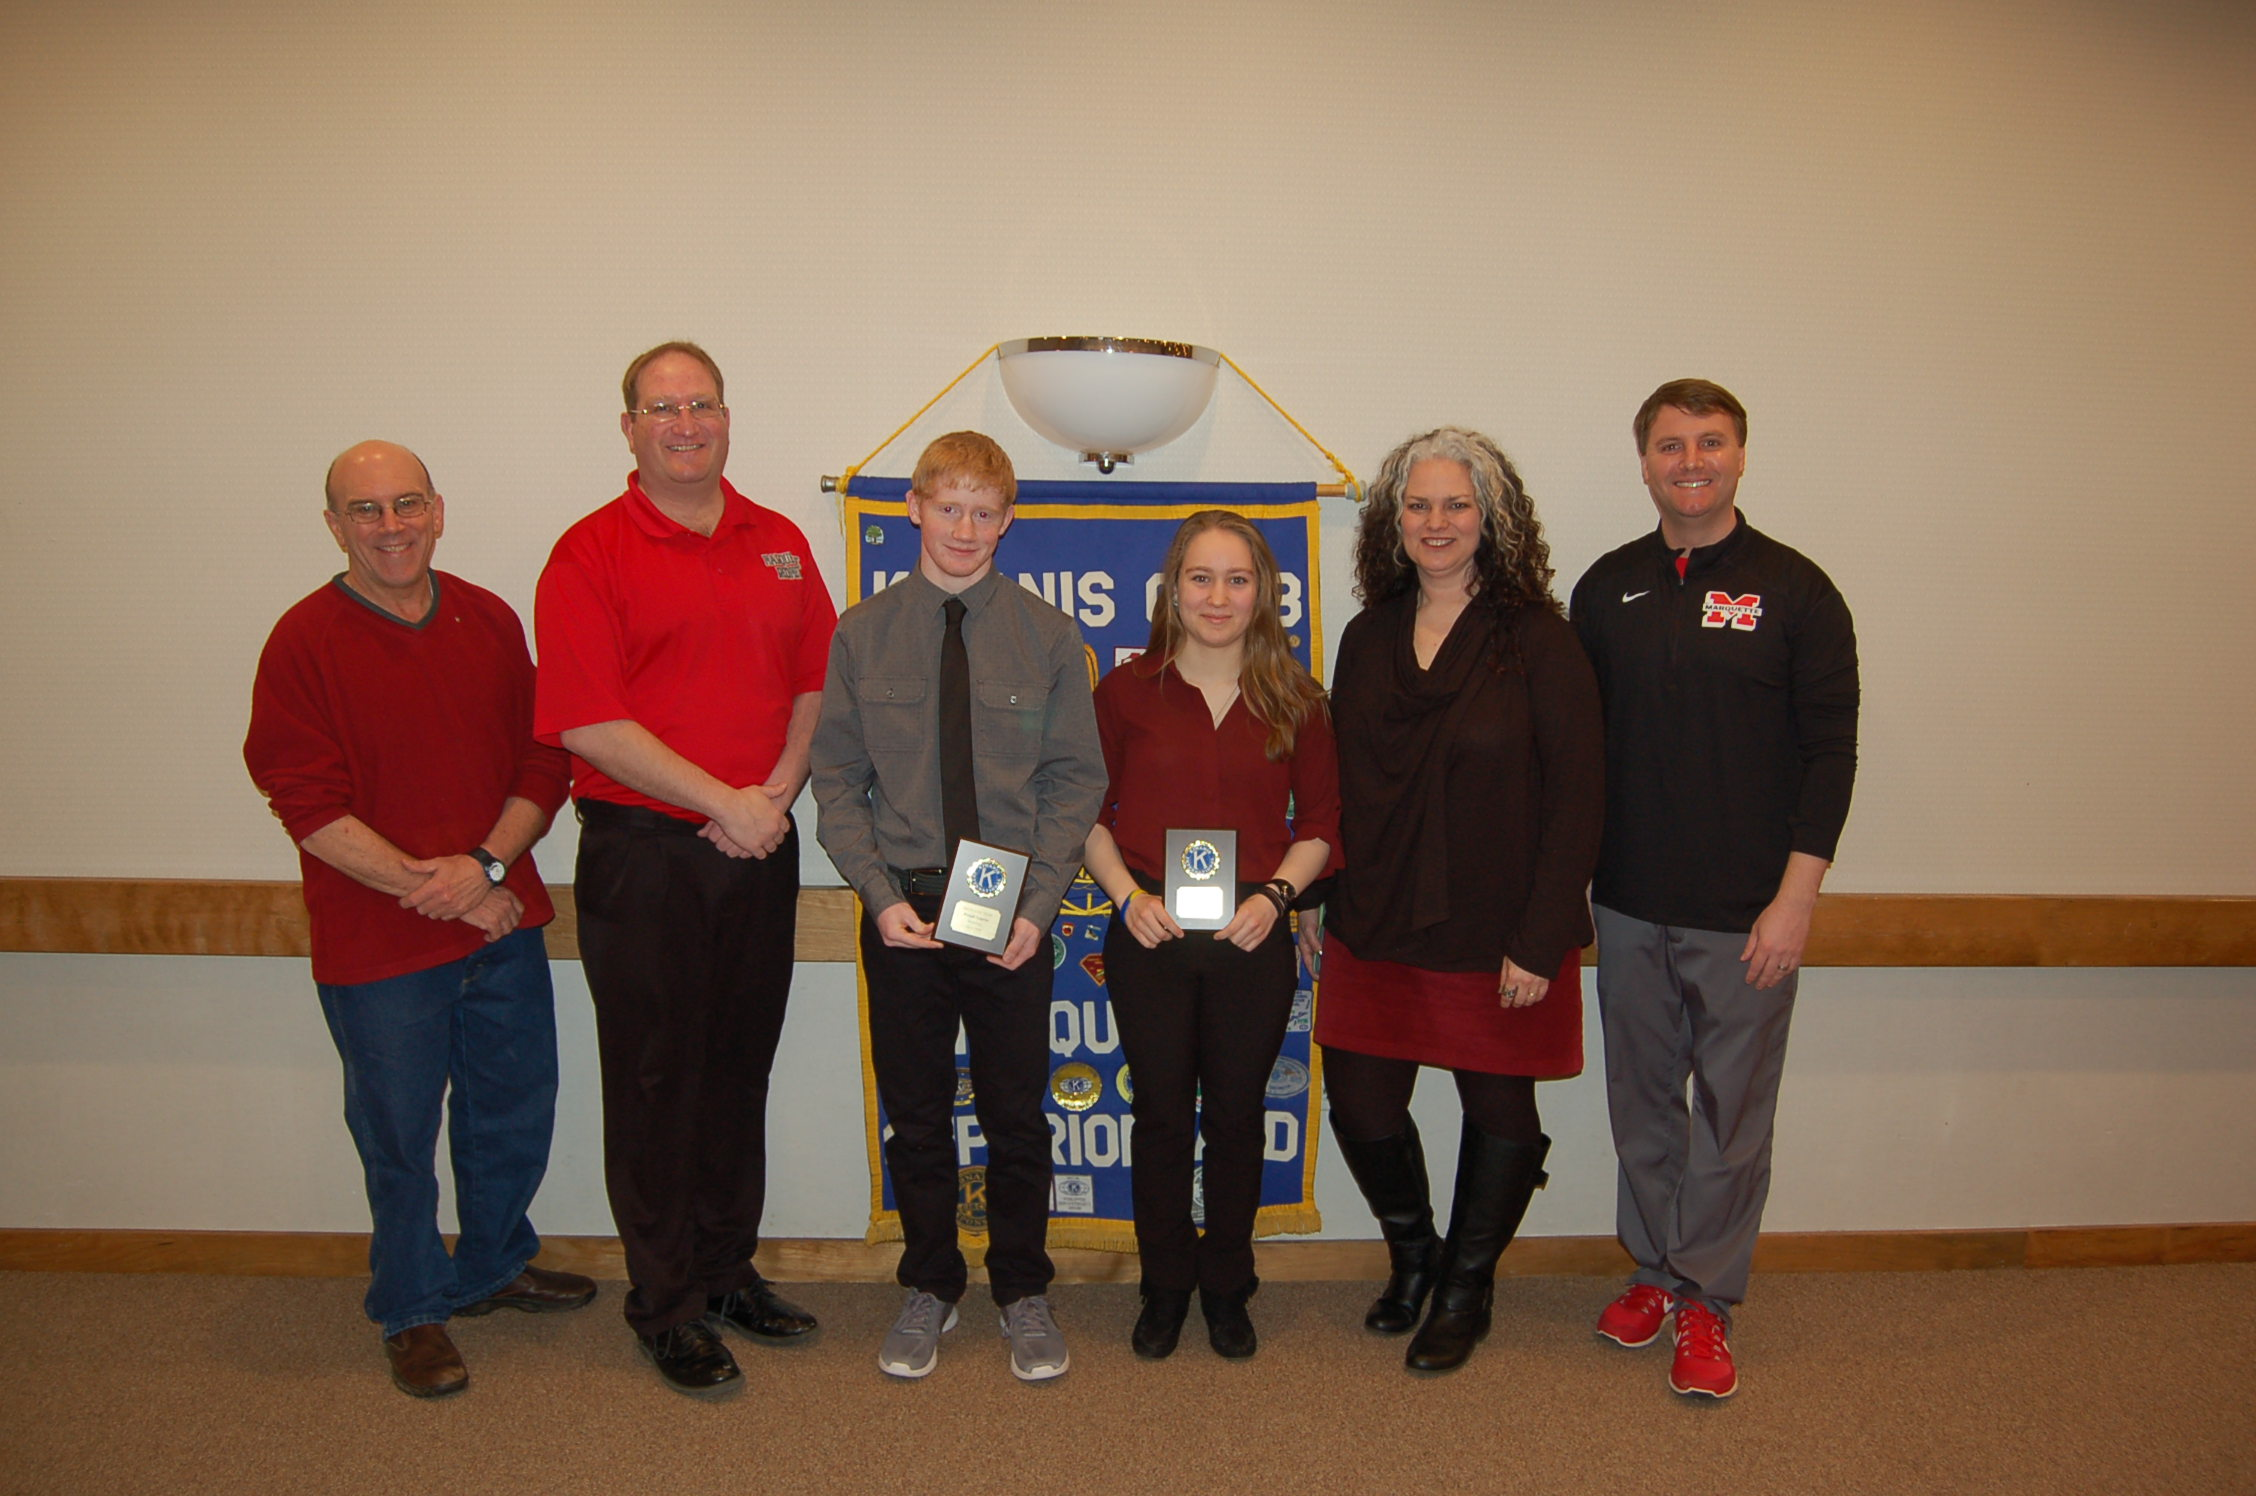 Kiah Staley and Joe Lagrou Named March Athletes of the Month